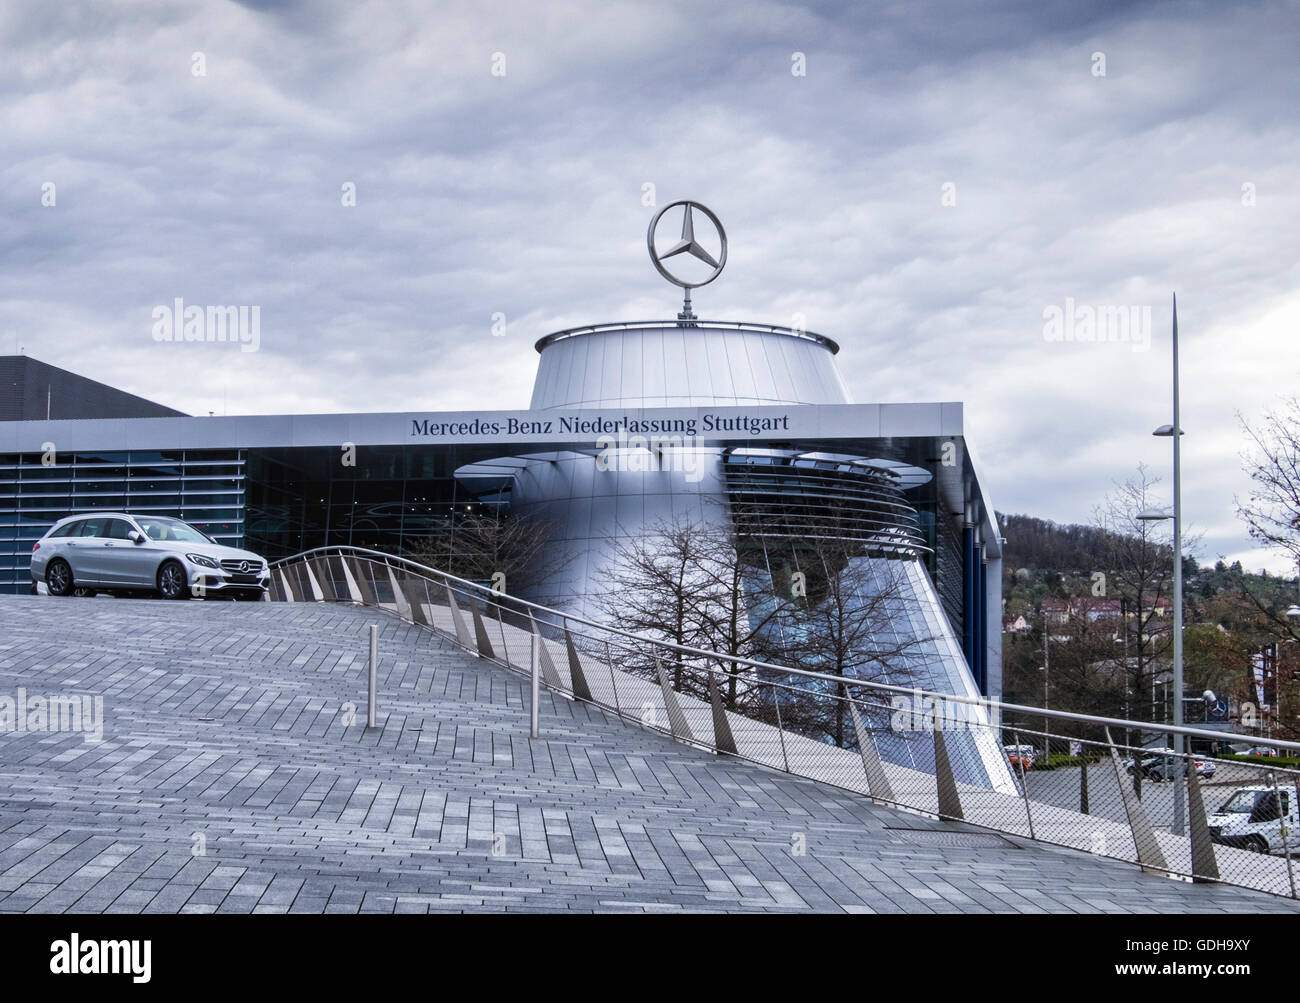 headquarters mercedes benz stuttgart stockfotos. Black Bedroom Furniture Sets. Home Design Ideas